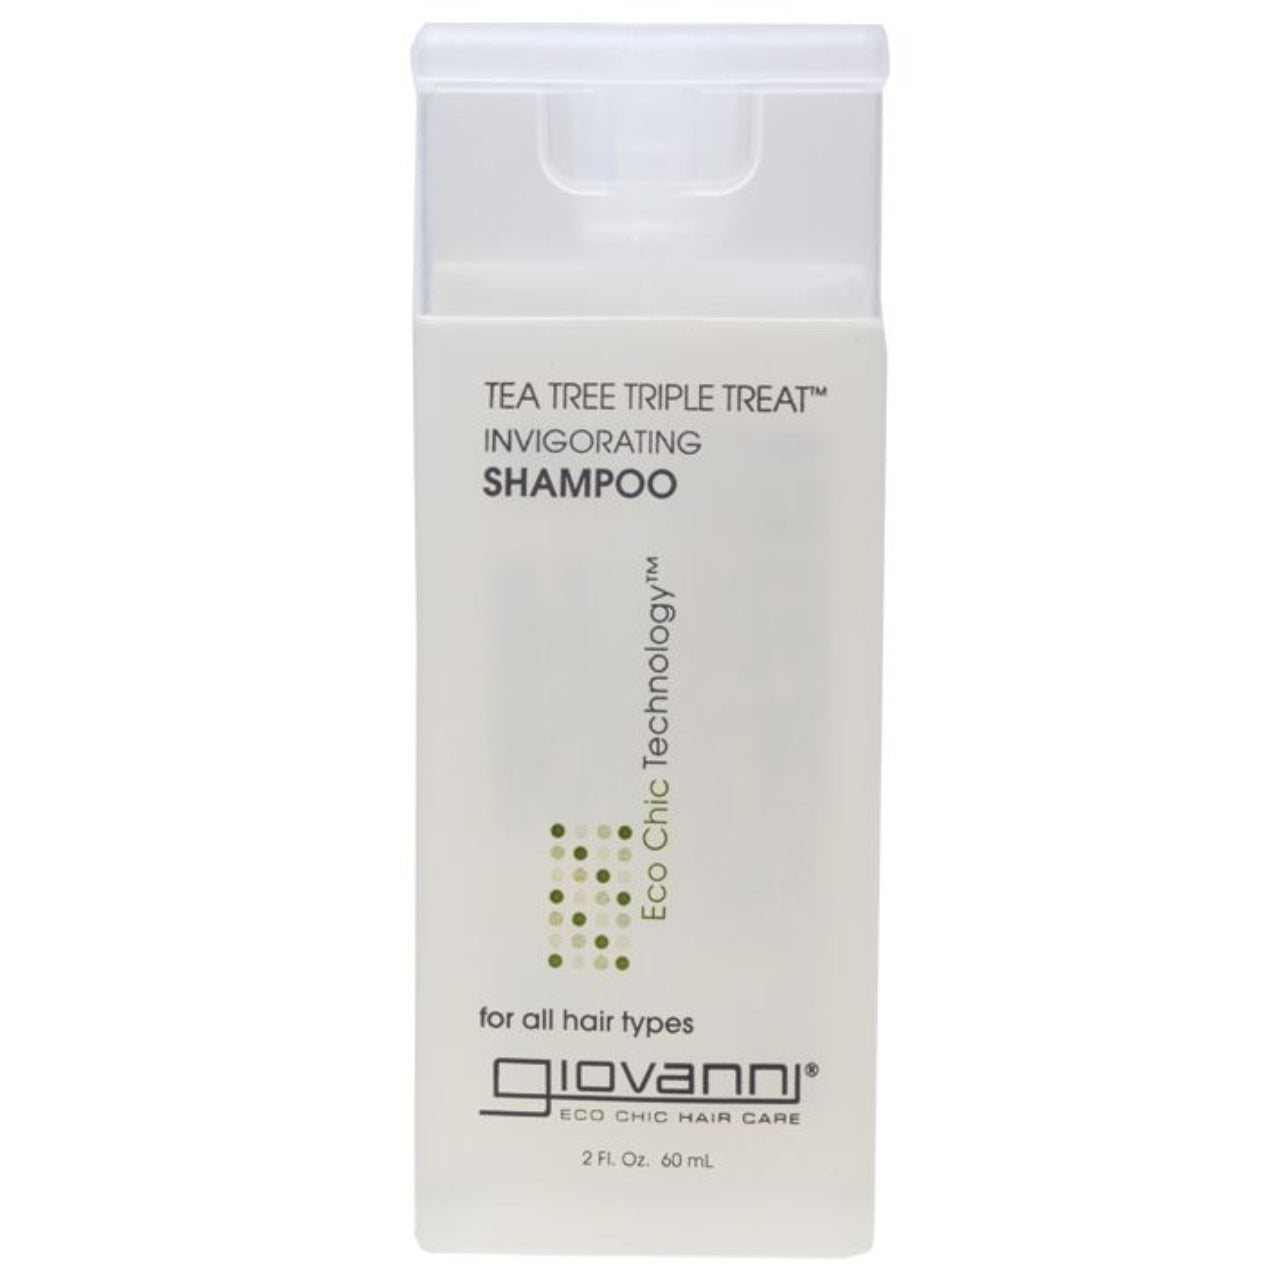 Giovanni Shampoo -Tea Tree Triple Treat